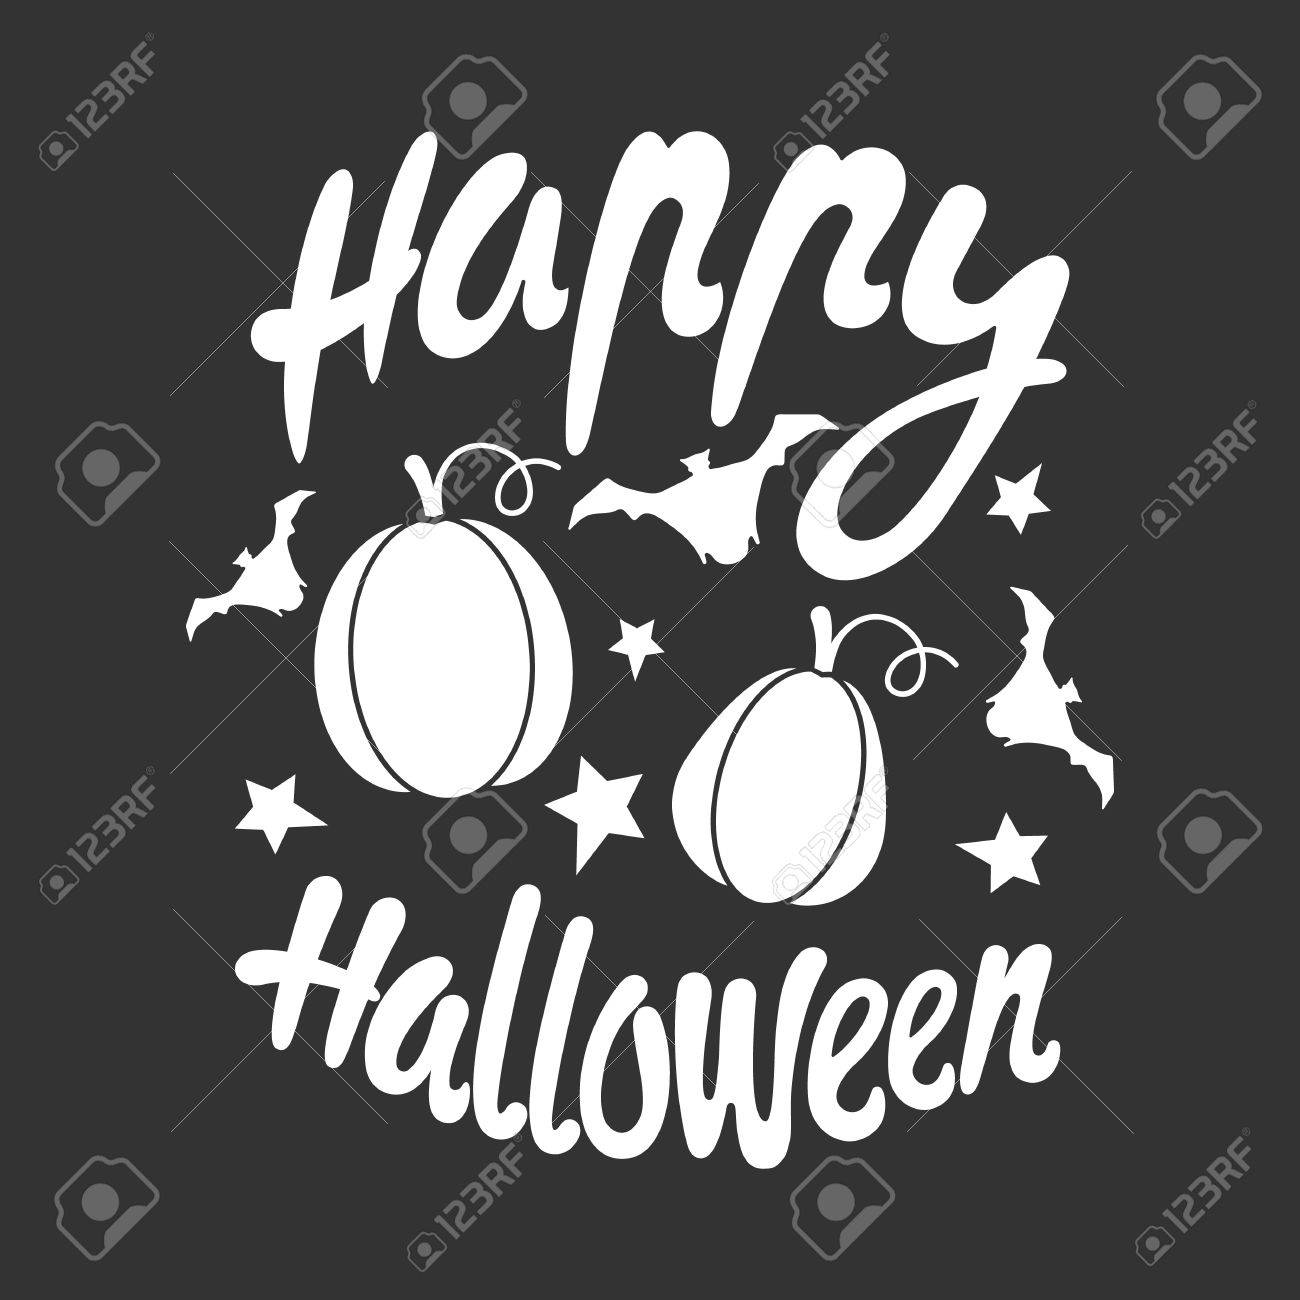 Happy halloween message design background vector illustration happy halloween message design background vector illustration this illustration can be used as a m4hsunfo